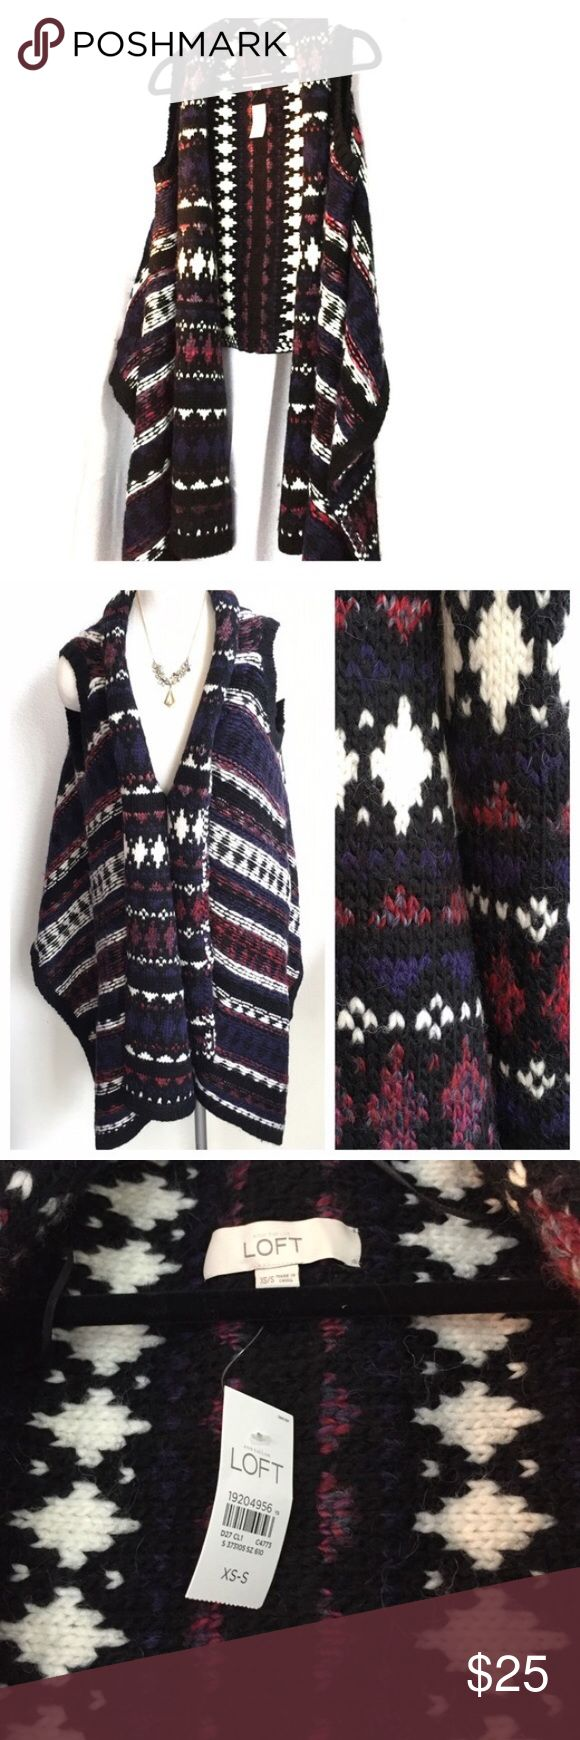 NWT❗️LOFT Open sweater with Aztec print!! 🤗 Never worn LOFT chunky sweater. Super cute and warm! Perfect for the fall and winter months. Wear this around a bonfire or snuggle at home on the couch 🤗 Longer in front. Purple, black, maroon, navy and cream LOFT Sweaters Shrugs & Ponchos